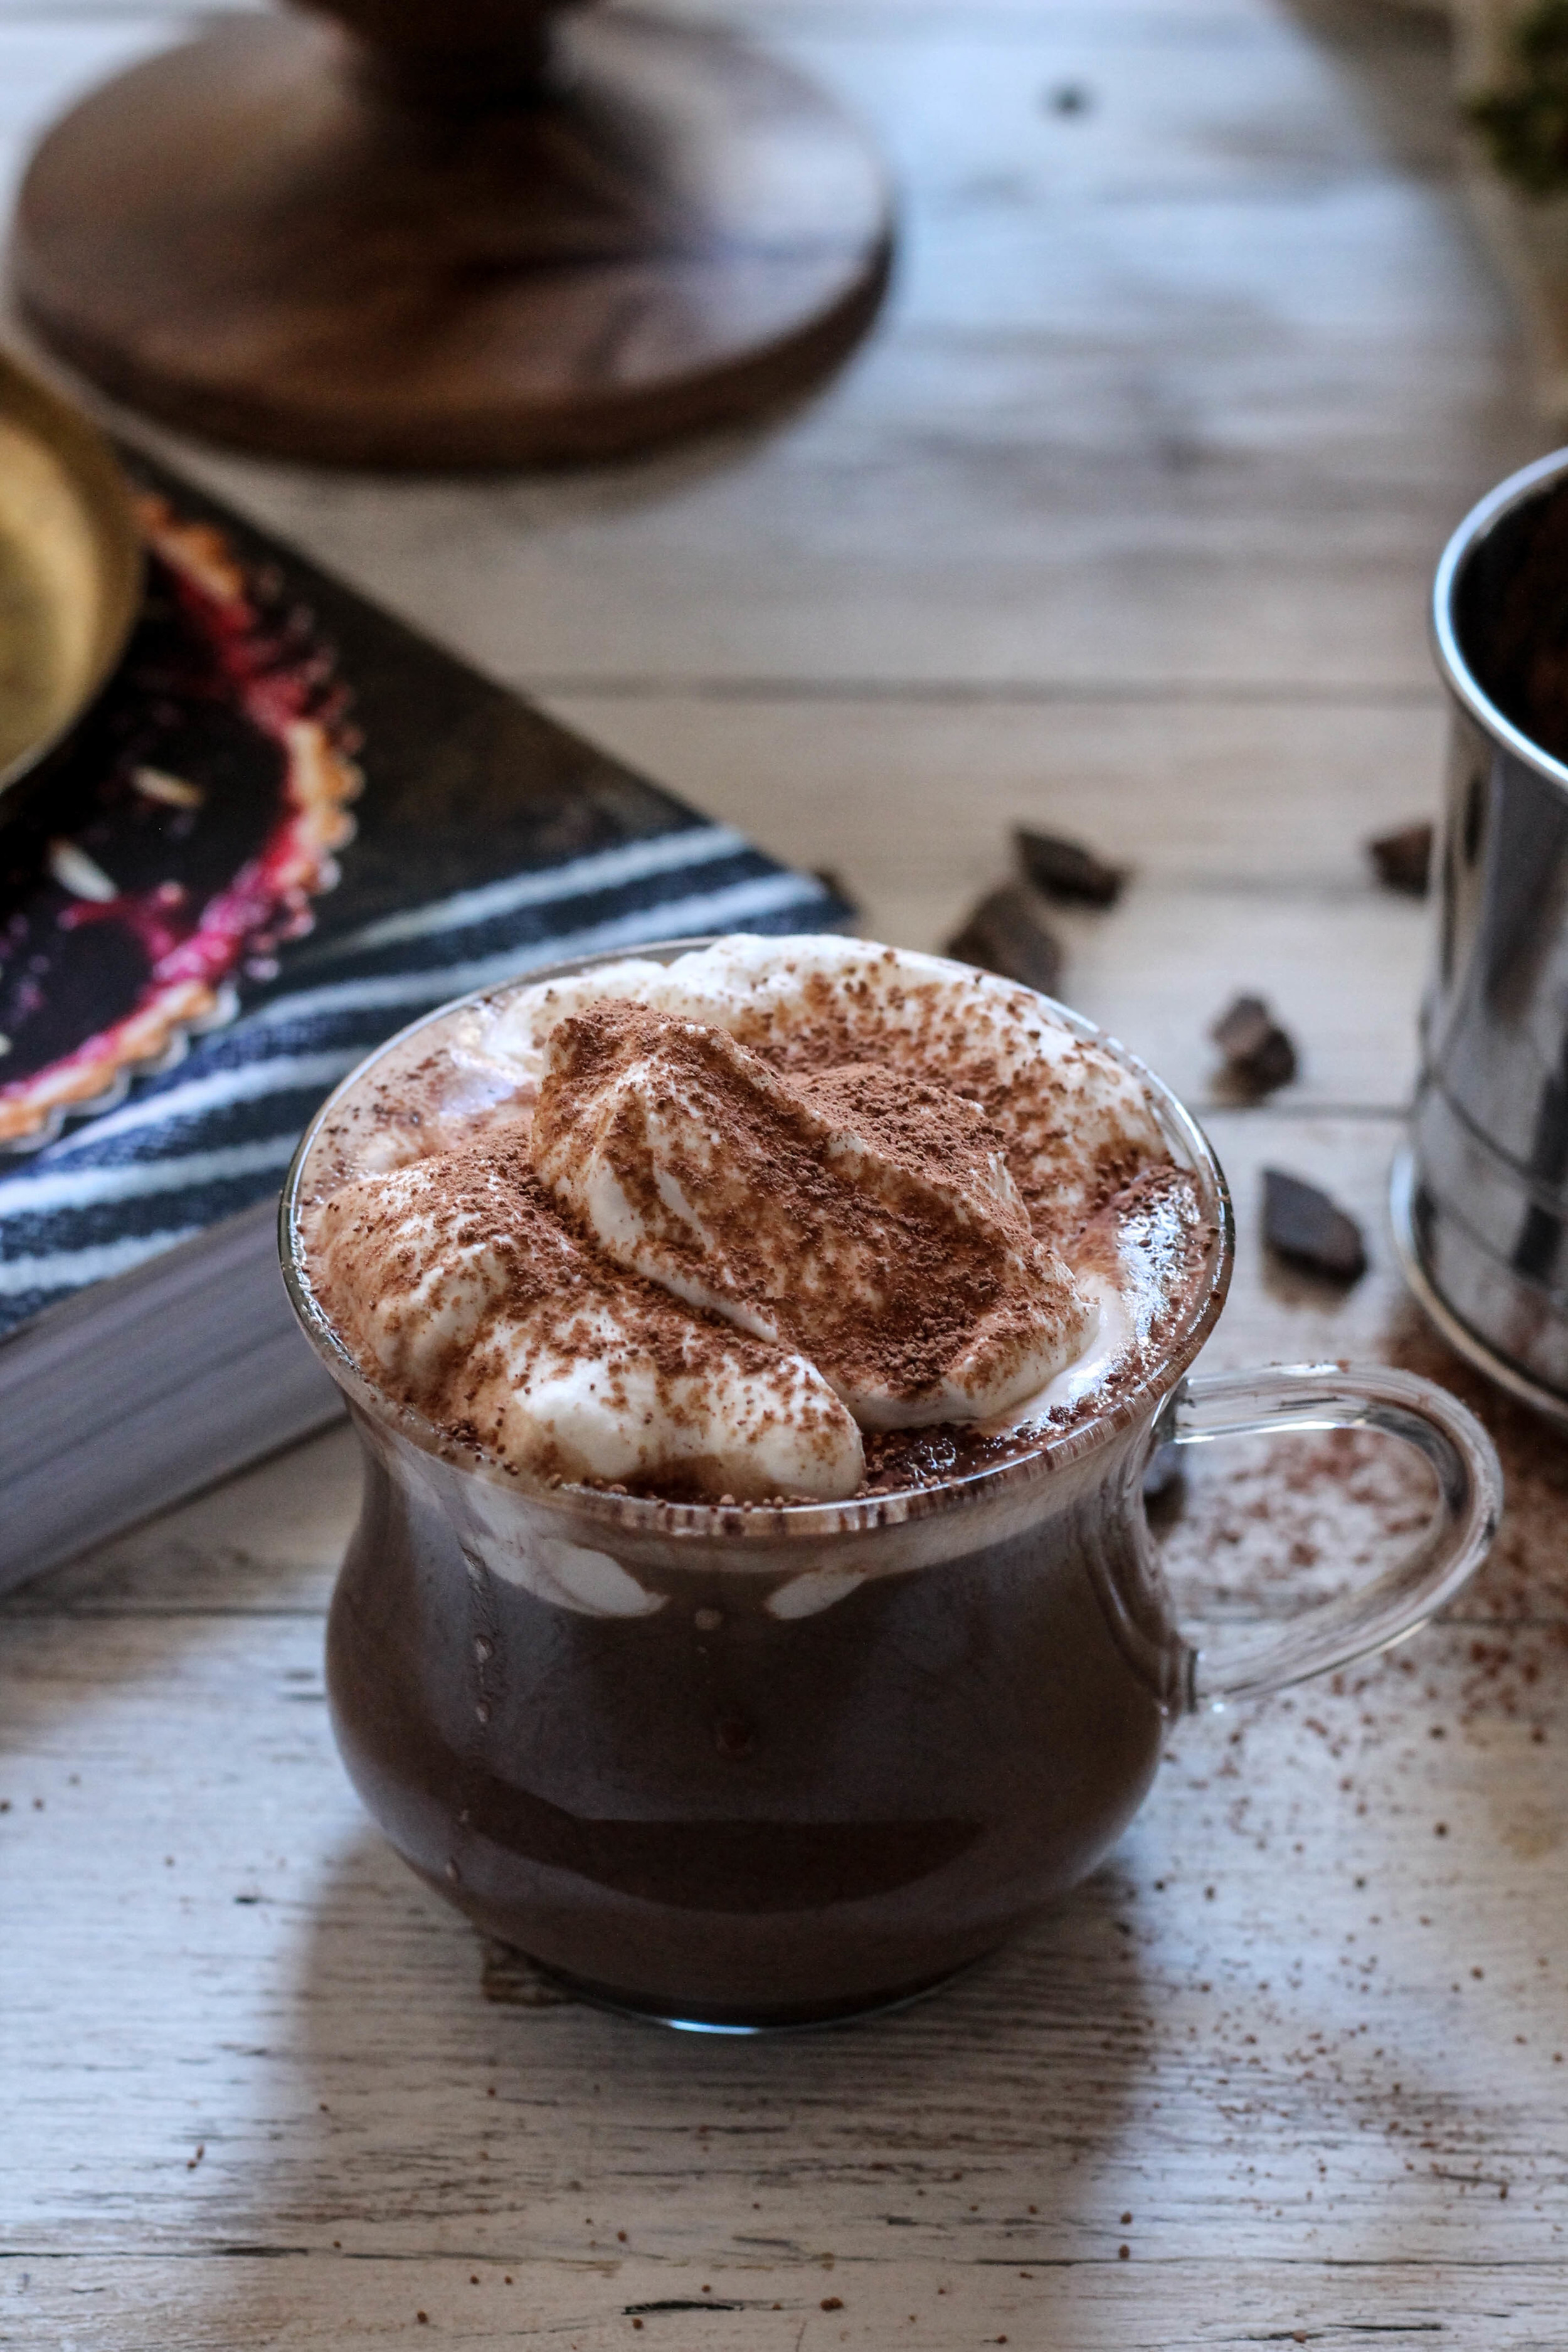 Spicy Pumpkin Hot Chocolate from The Homemade Kitchen {The Pedantic Foodie}